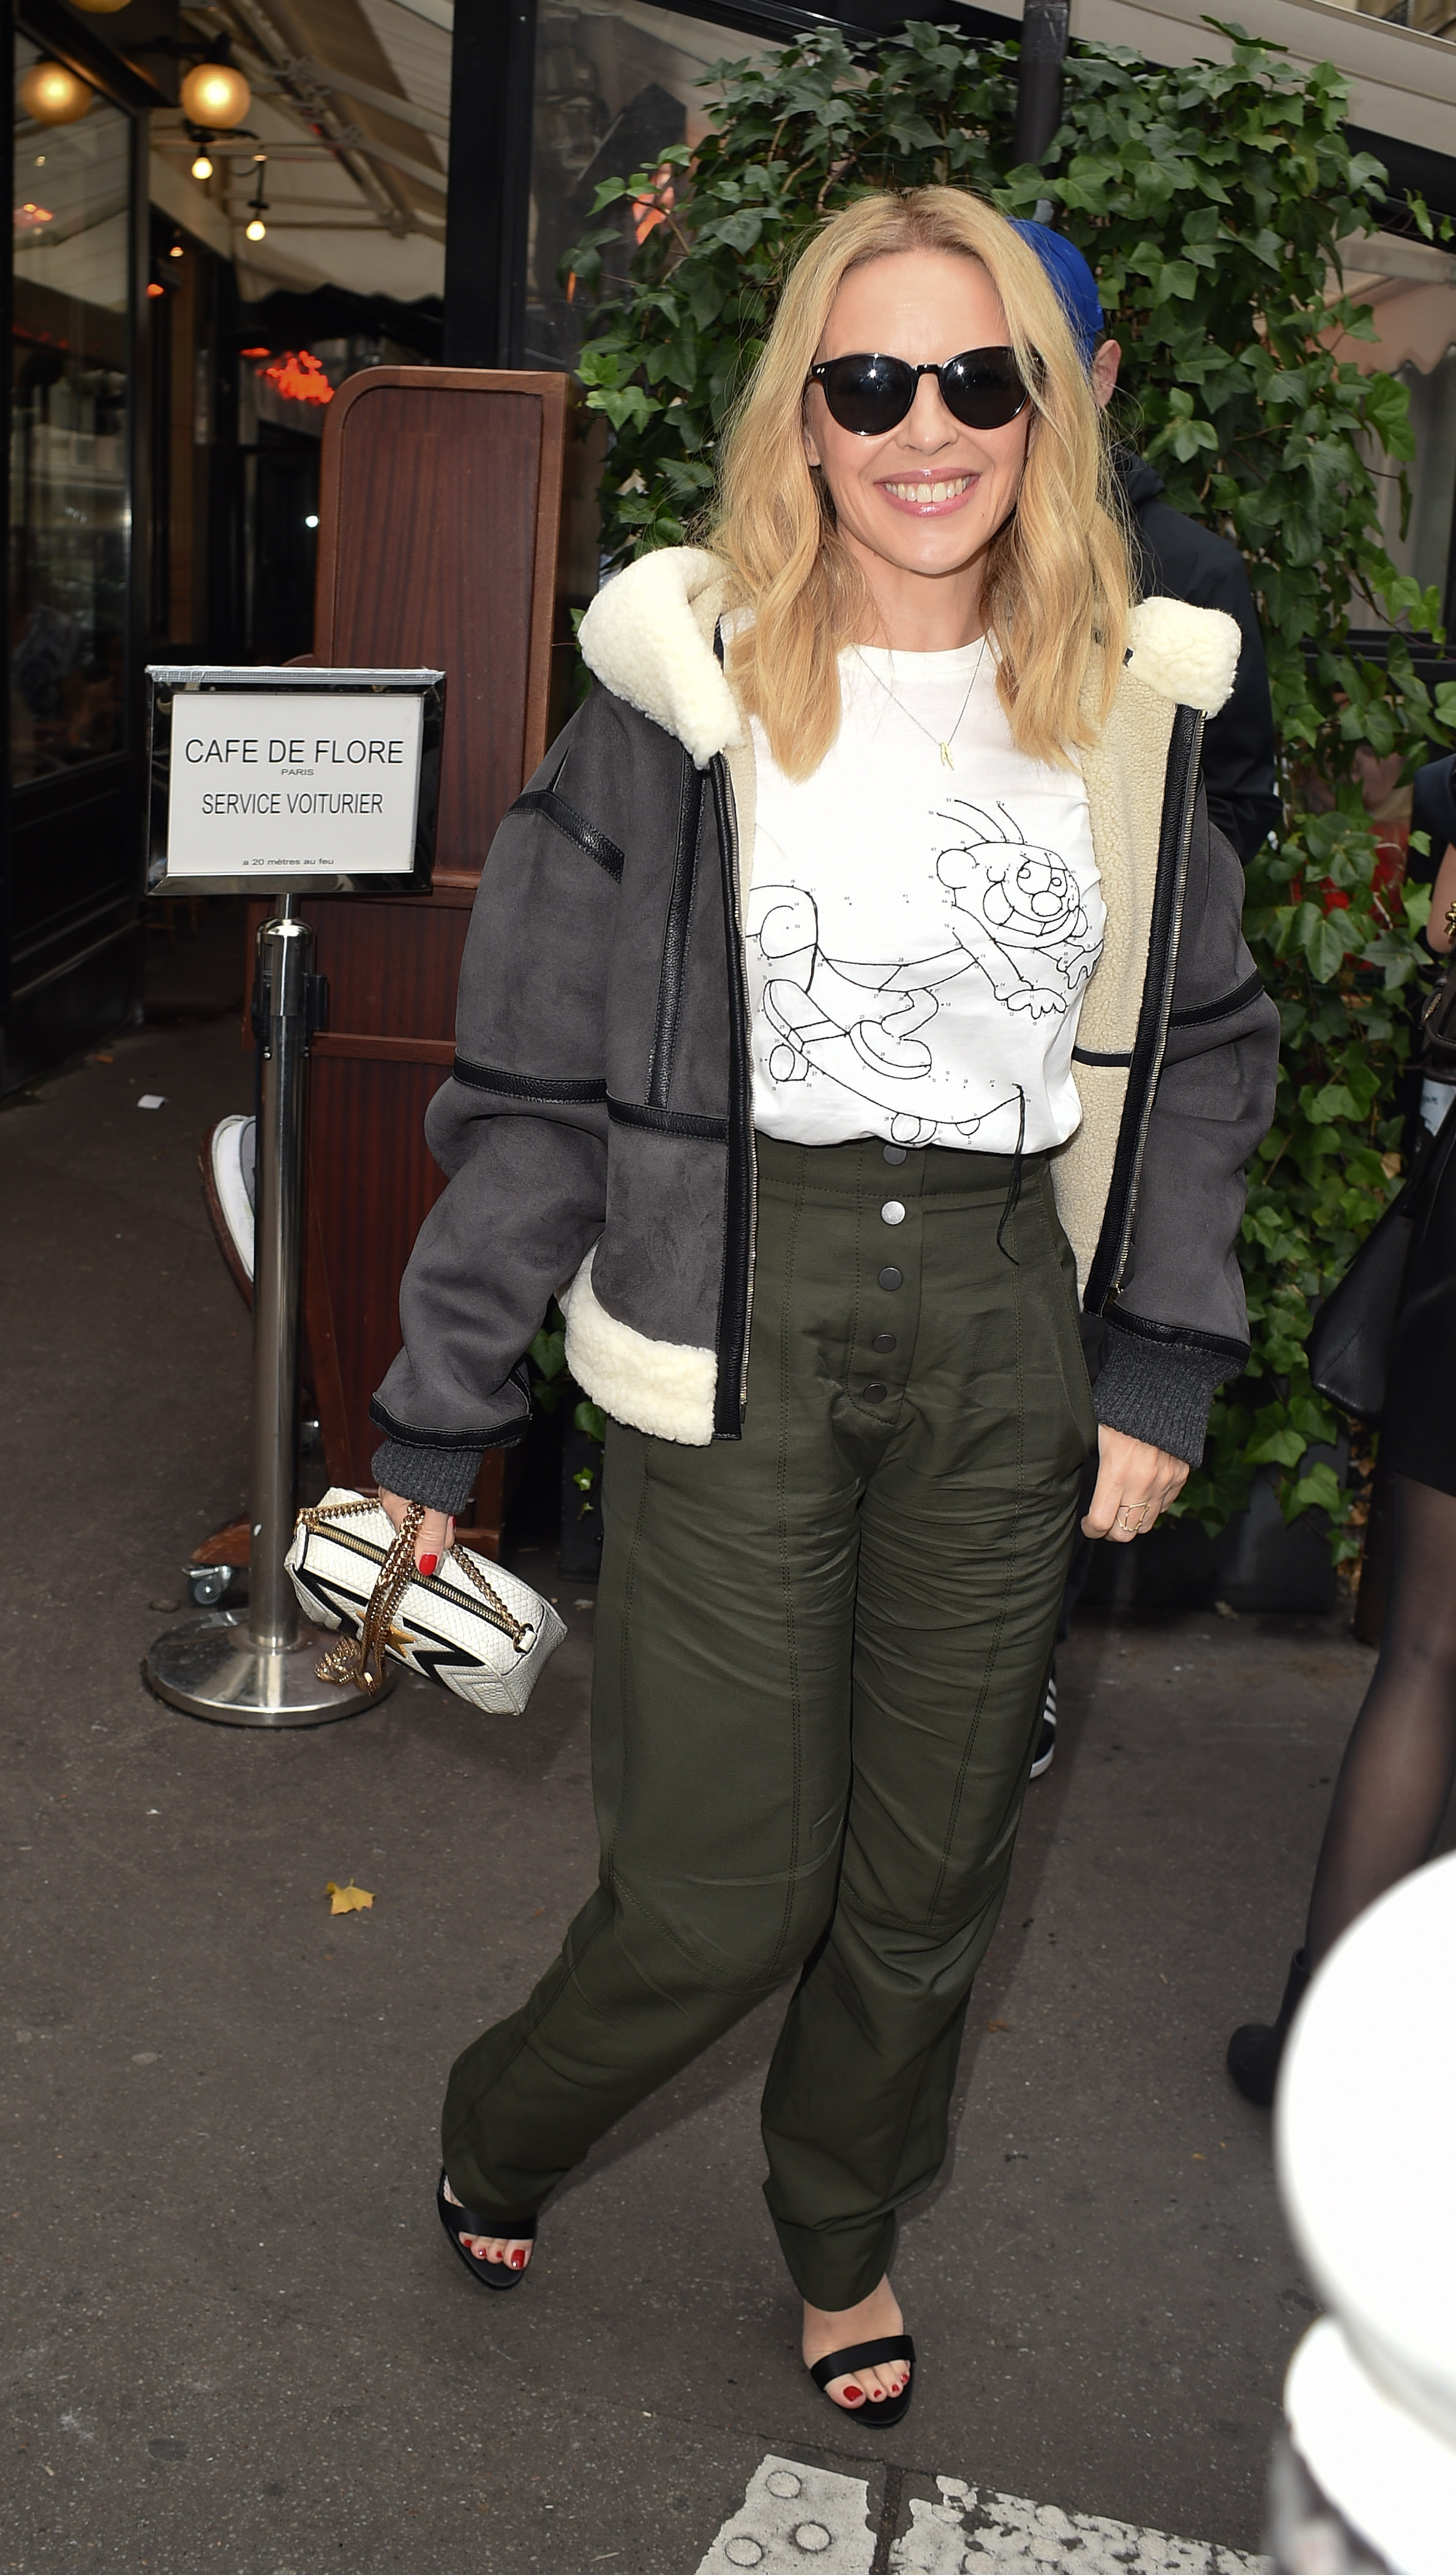 Kylie Minogue is seen at Cafe De flore in Paris <P> Pictured: Kylie Minogue <B>Ref: SPL1593564  021017  </B><BR/> Picture by: Neil Warner / Splash News<BR/> </P><P> <B>Splash News and Pictures</B><BR/> Los Angeles:310-821-2666<BR/> New York:212-619-2666<BR/> London:870-934-2666<BR/> <span id=